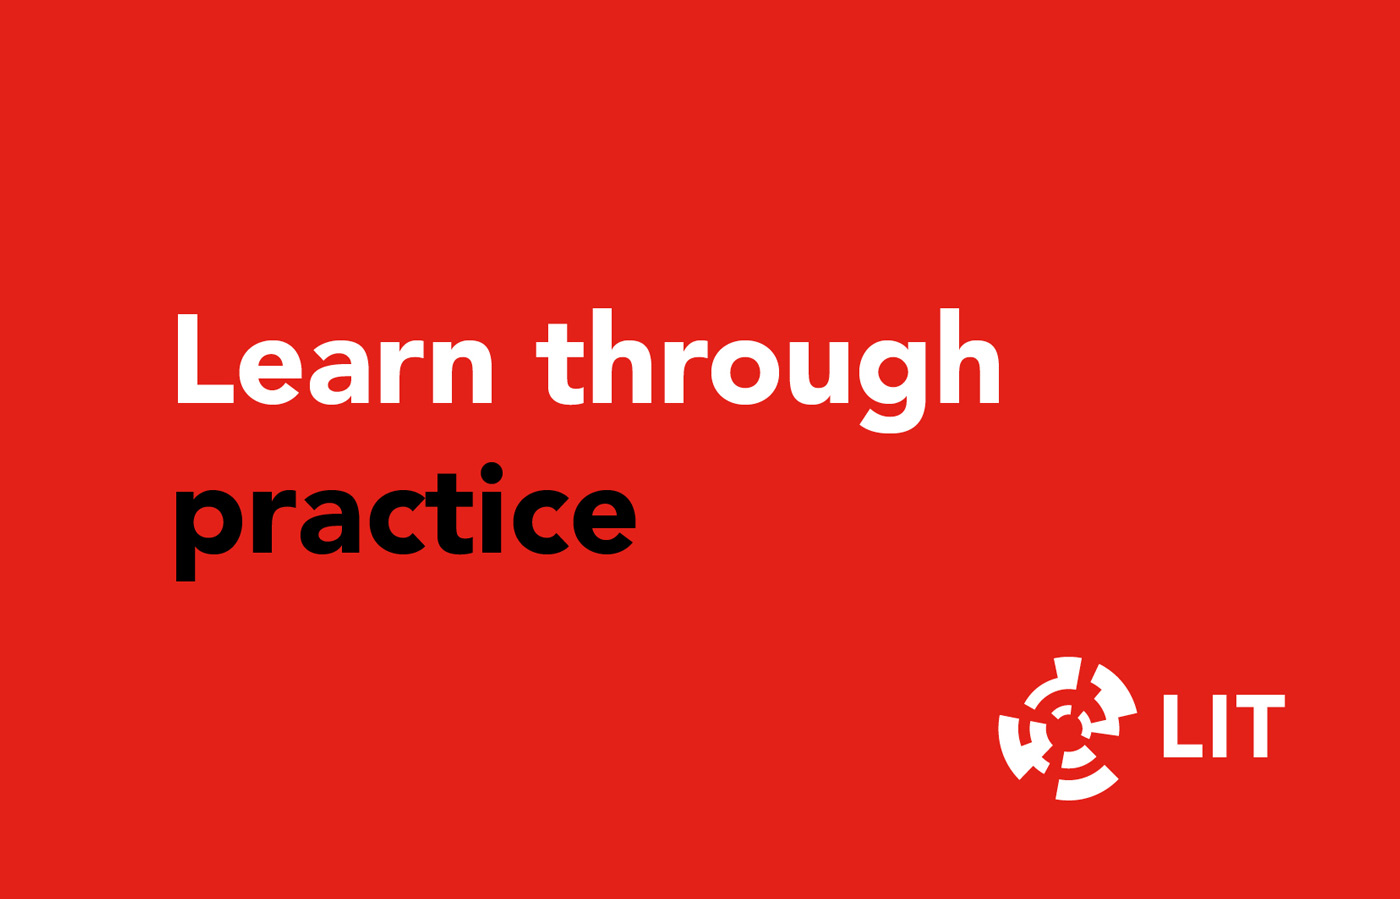 LIT graphic design. 'Learn through practice' white & black on red background with LIT logo